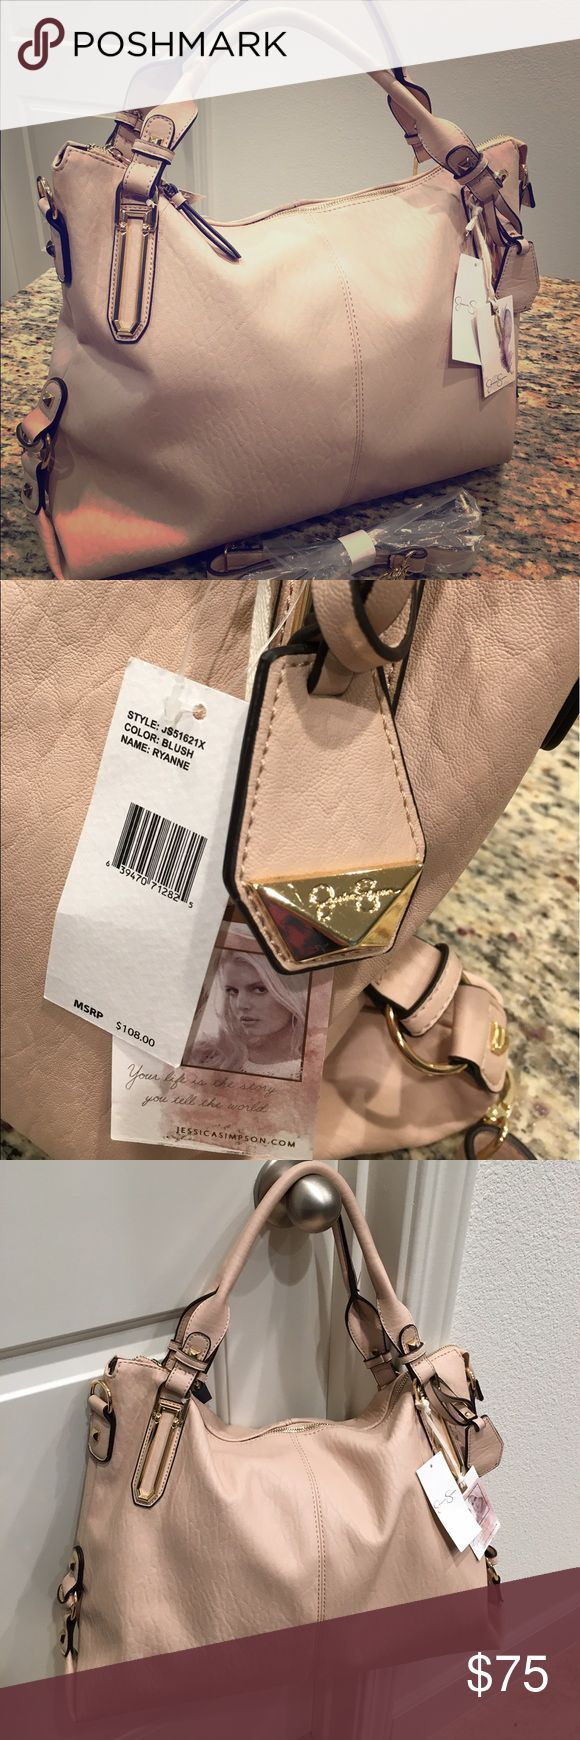 NWT Jessica Simpson Aryanna Blush Handbag New with tag! Retail over $110, get this now for a steal! Color: Blush. Comes with detachable shoulder strap. Approx size: 13 height, 17 width, 5 depth. All reasonable offers are welcome! Jessica Simpson Bags Shoulder Bags